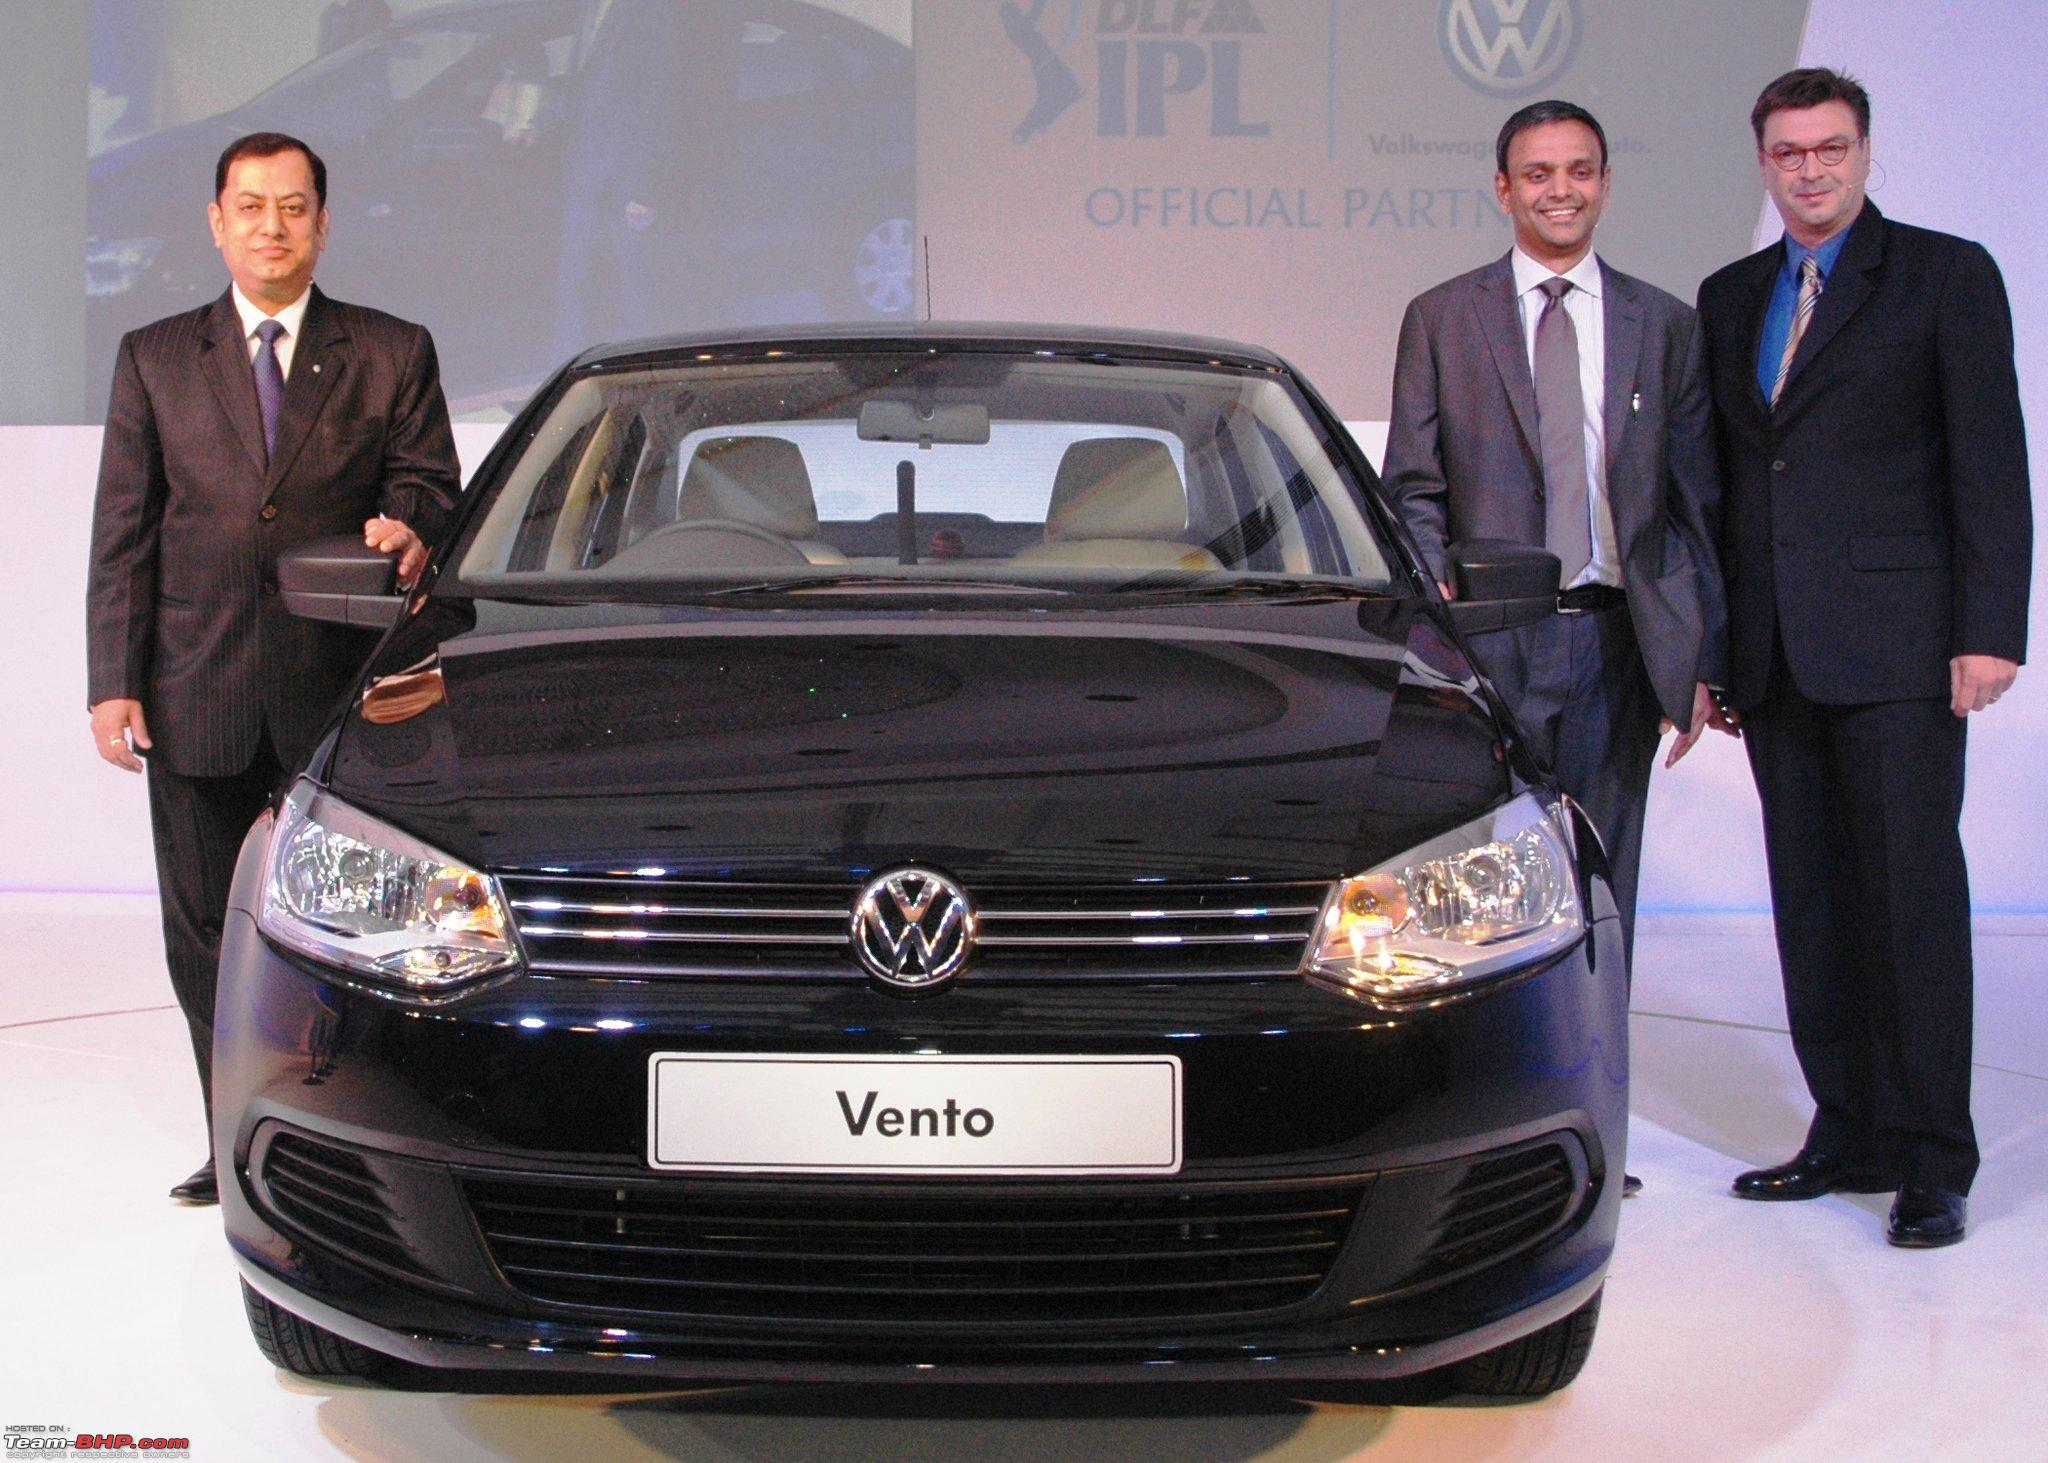 Report pics vw vento ipl edition edit now ipl edition ii launched for